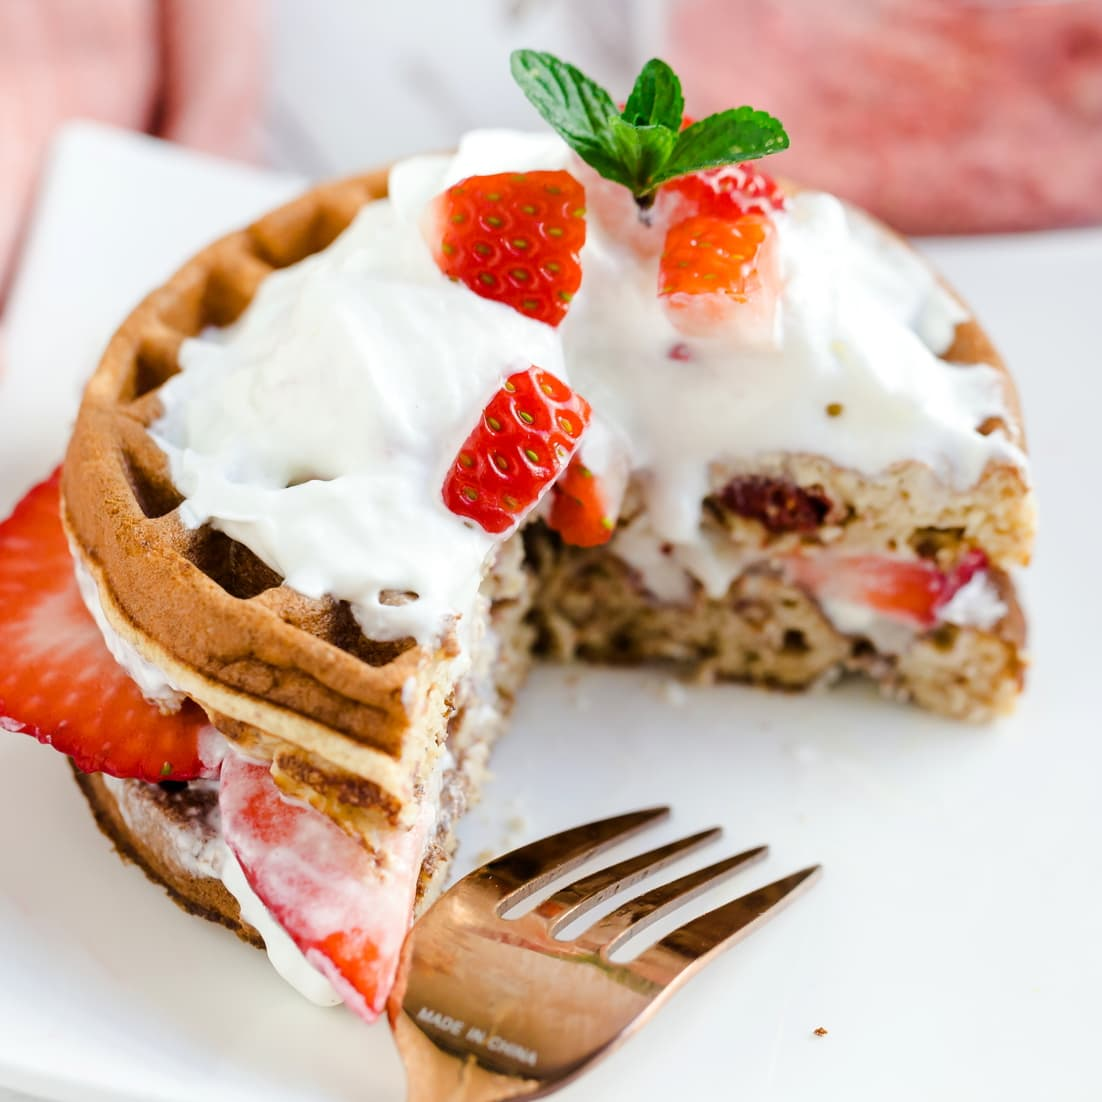 Keto Coconut Strawberry Shortcake Chaffle served with whip cream and sliced strawberries showing cross sectional cut